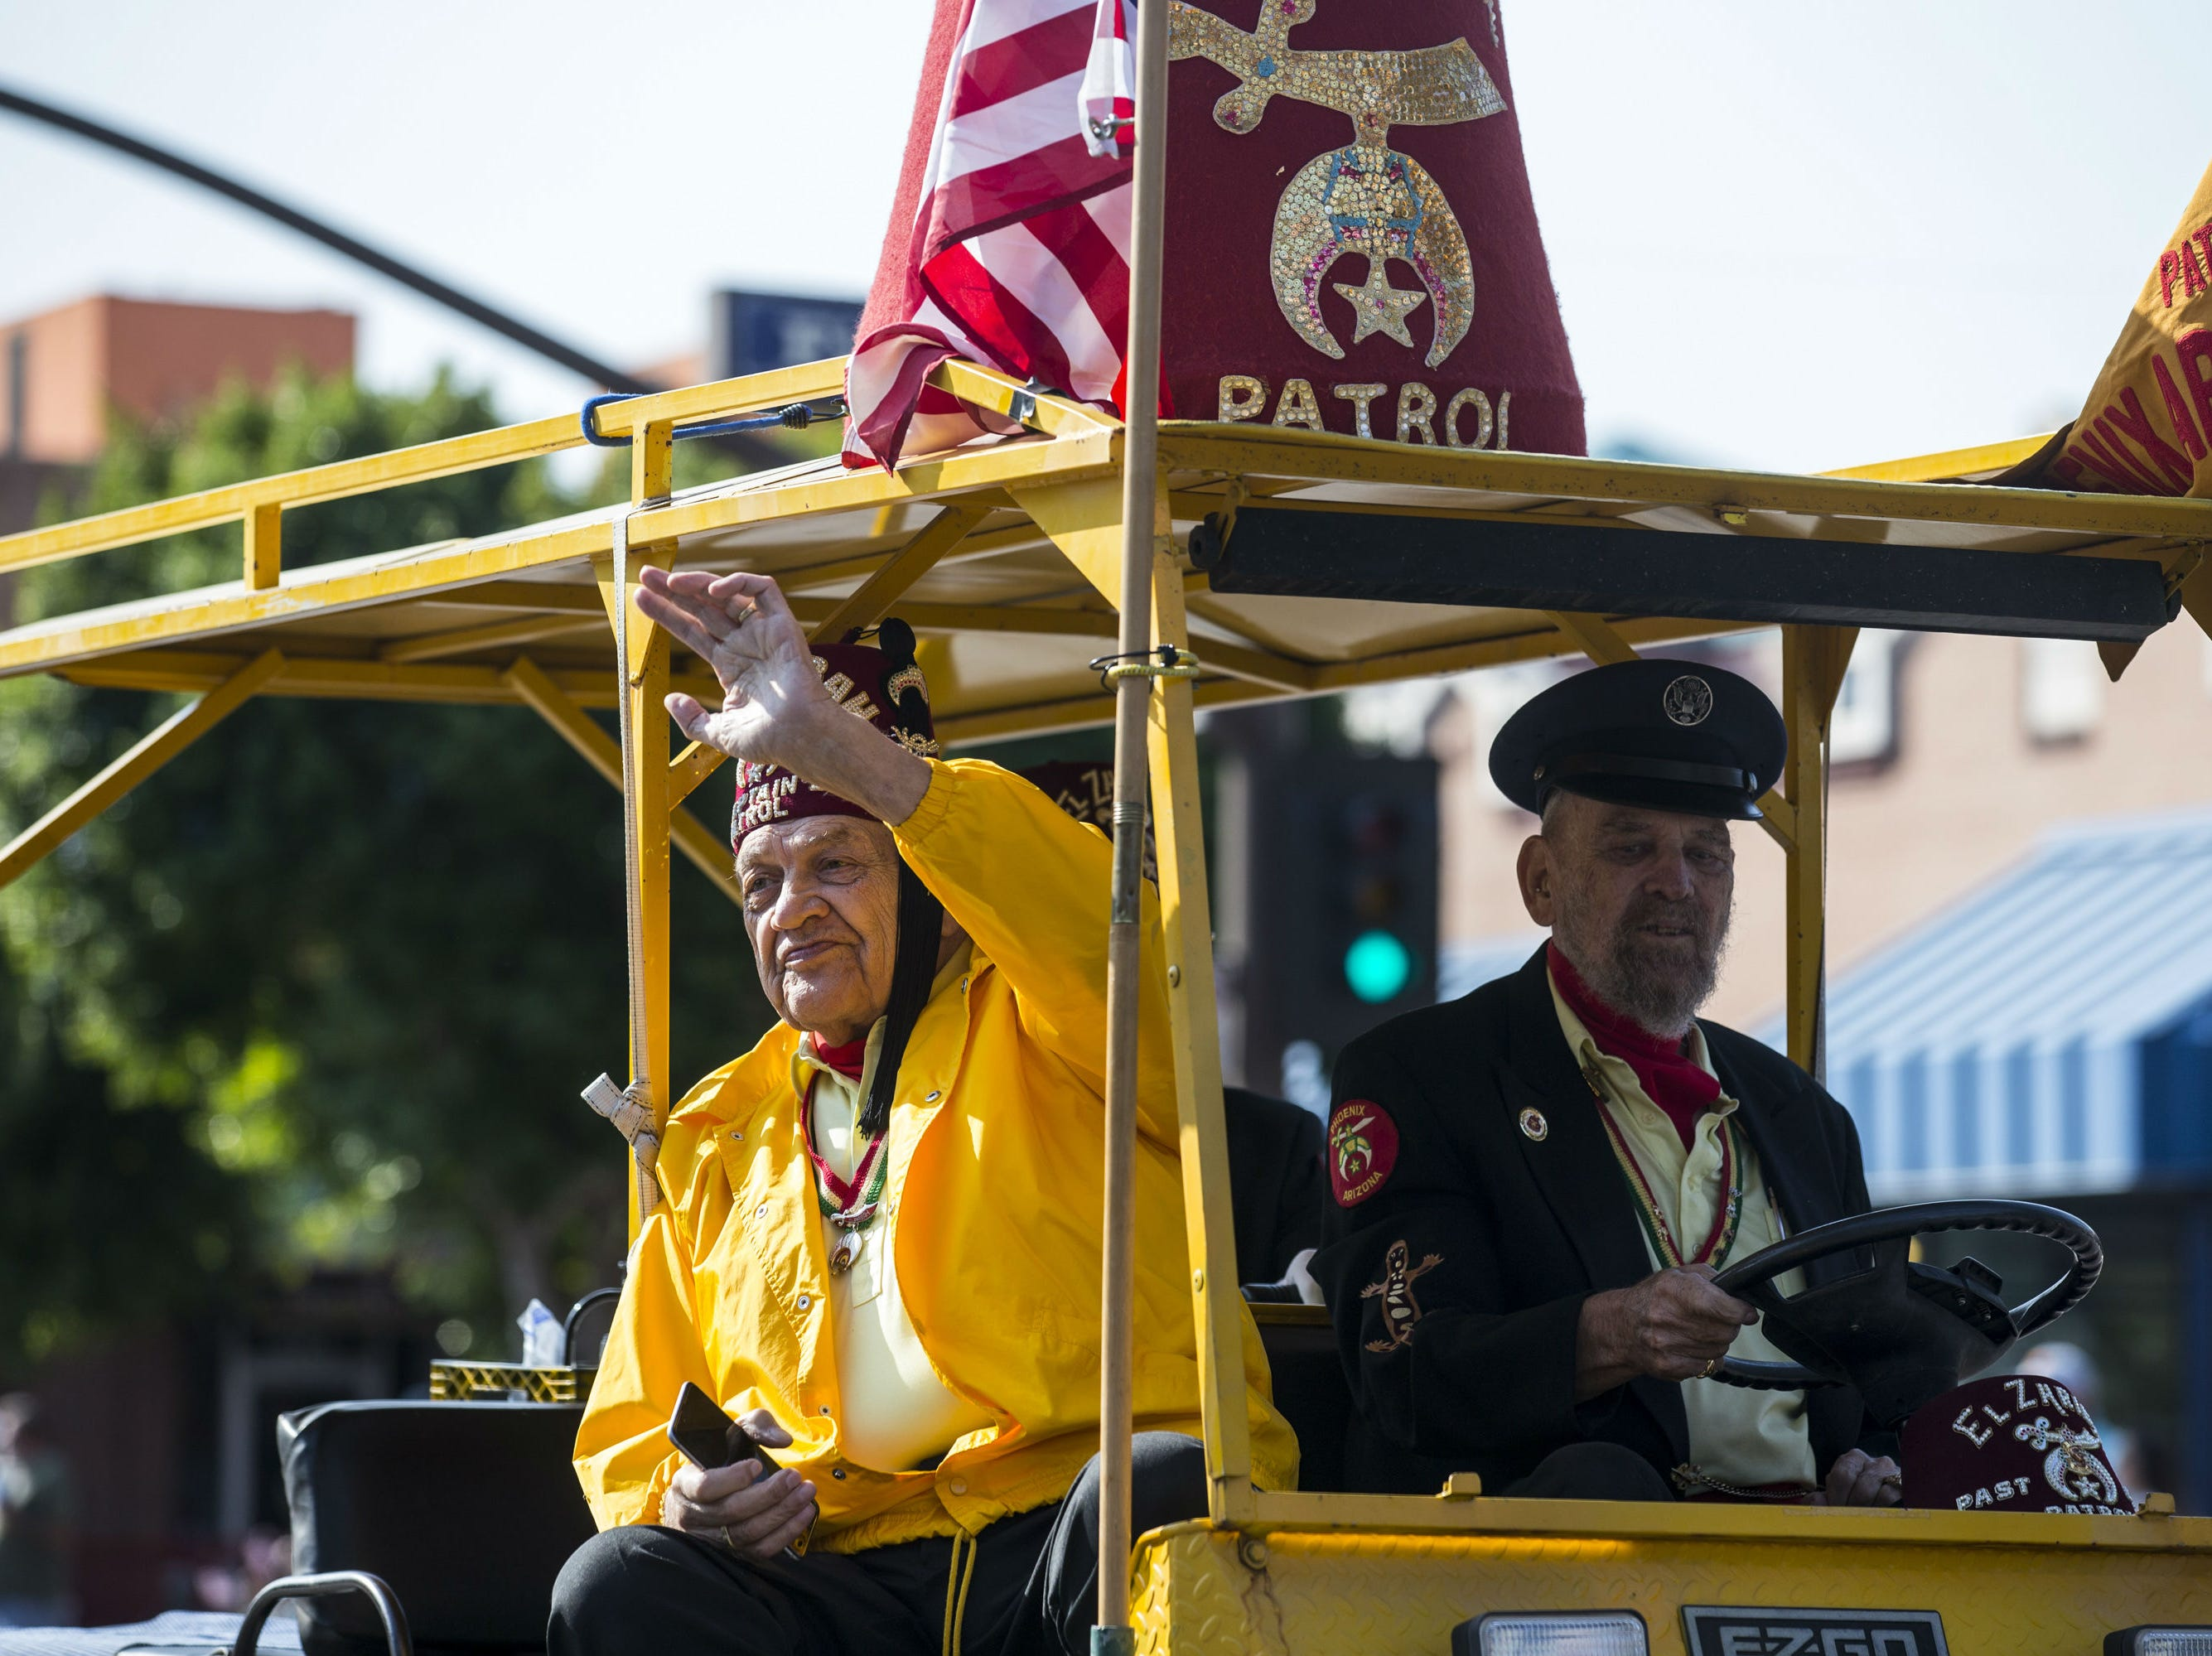 Shriners drive down Mill Avenue during the Veterans Day Parade on Nov. 11, 2018, in Tempe, Ariz.